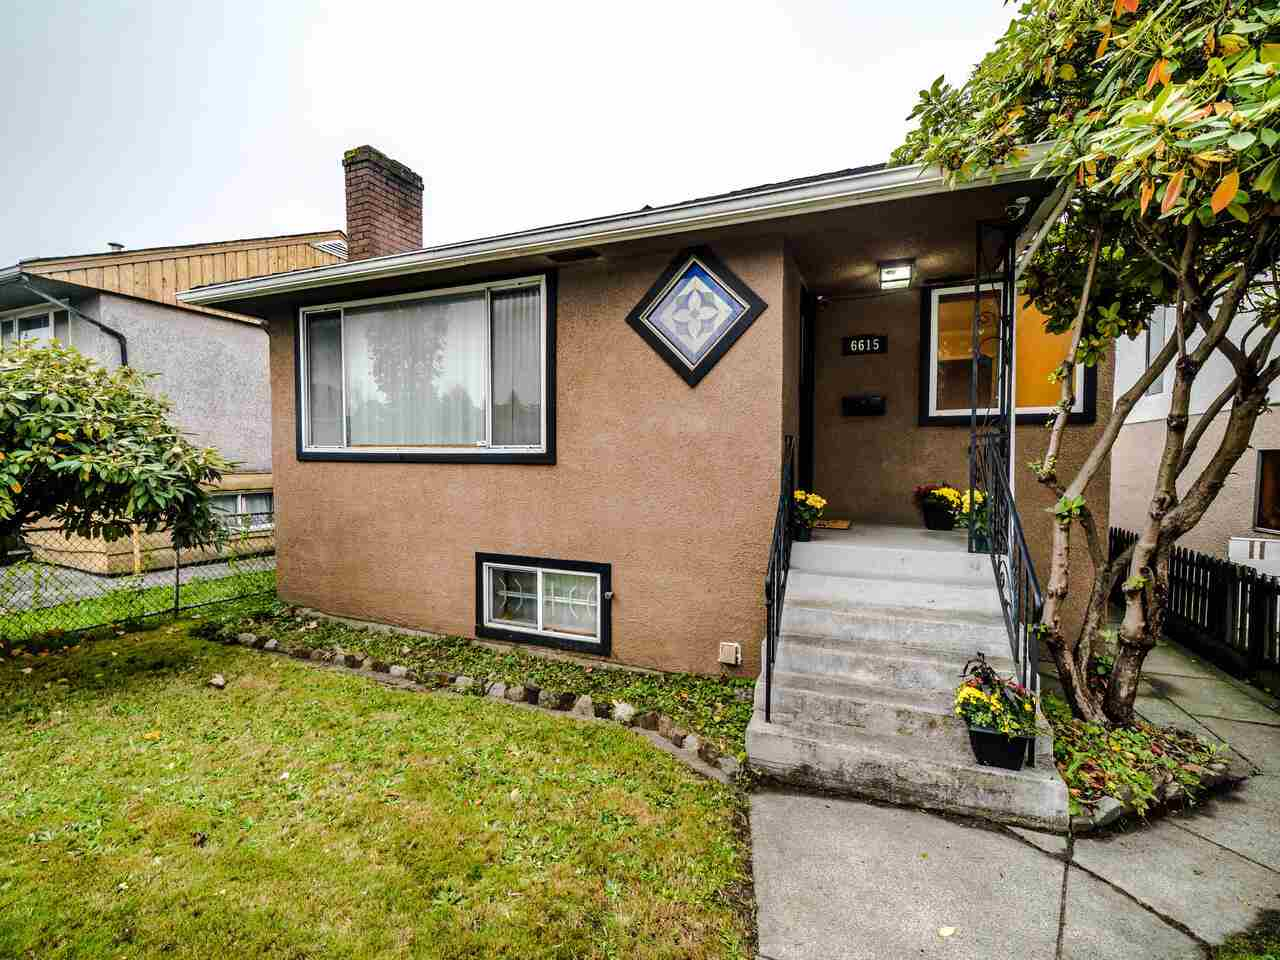 6615 KNIGHT STREET - South Vancouver House/Single Family for sale, 4 Bedrooms (R2510734)